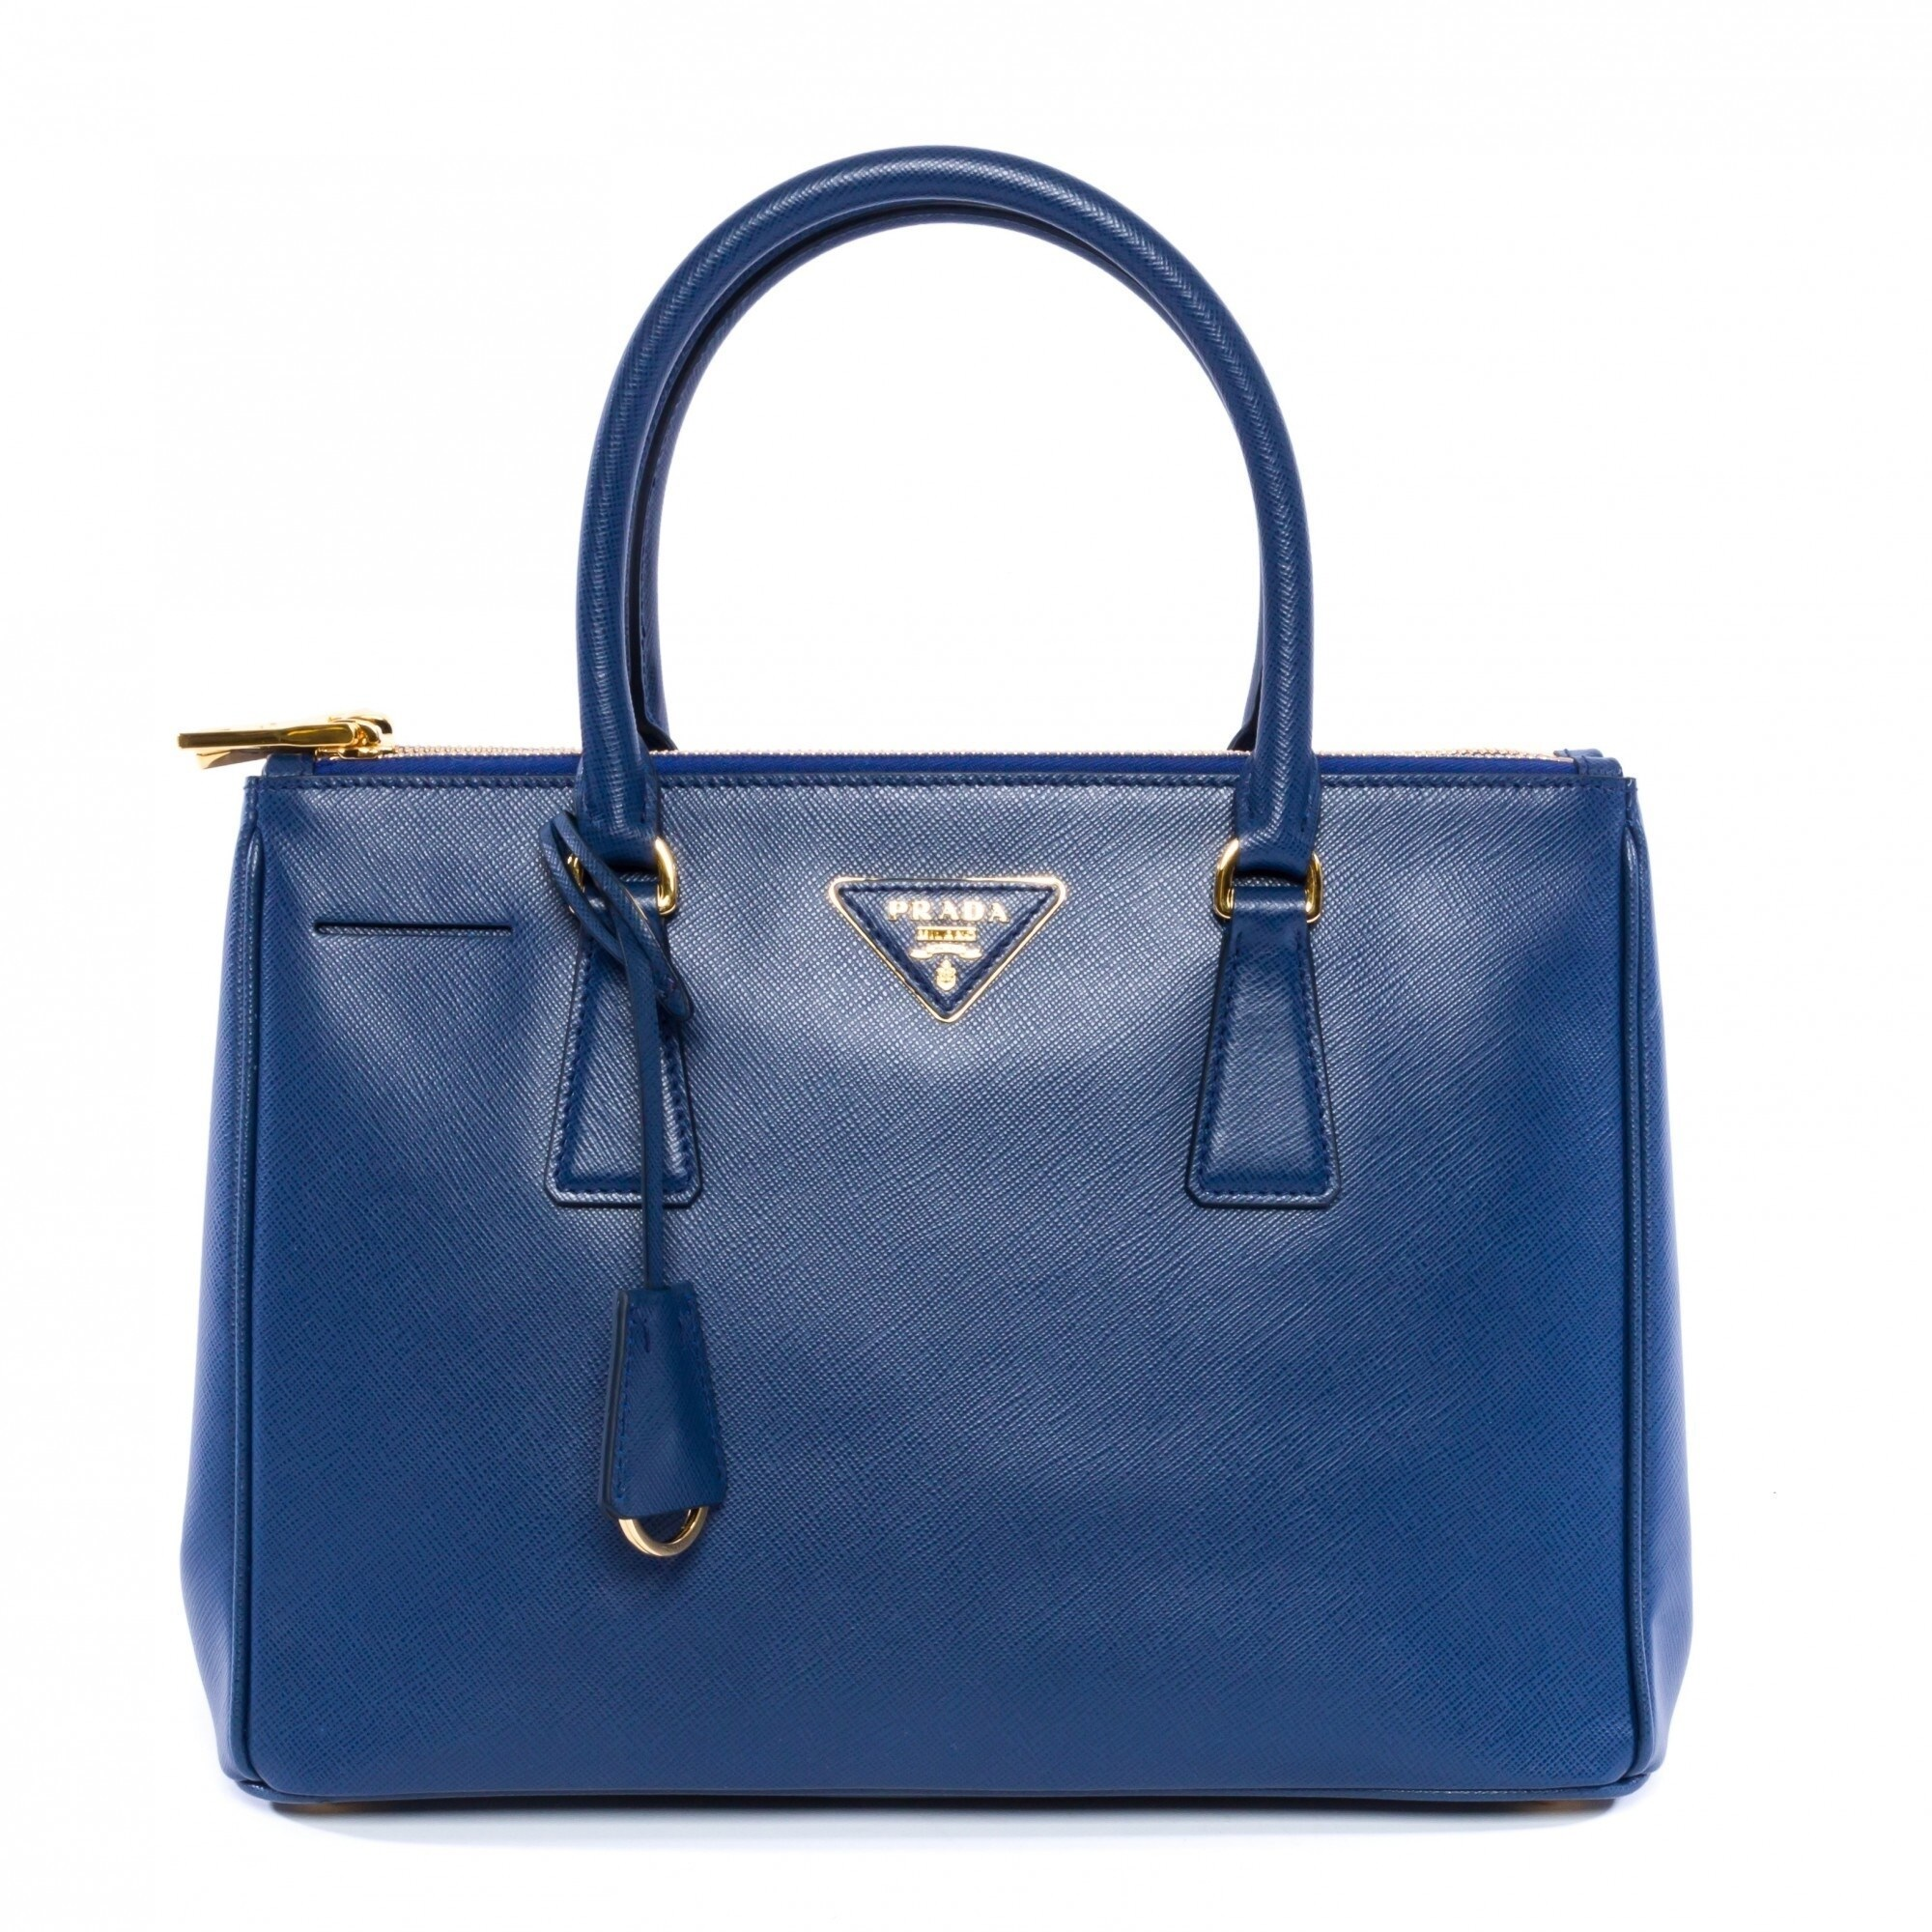 09ac6eb918eb ... clearance shop prada saffiano leather lux tote cornflower blue free  shipping today overstock 12091554 2a231 ddfa8